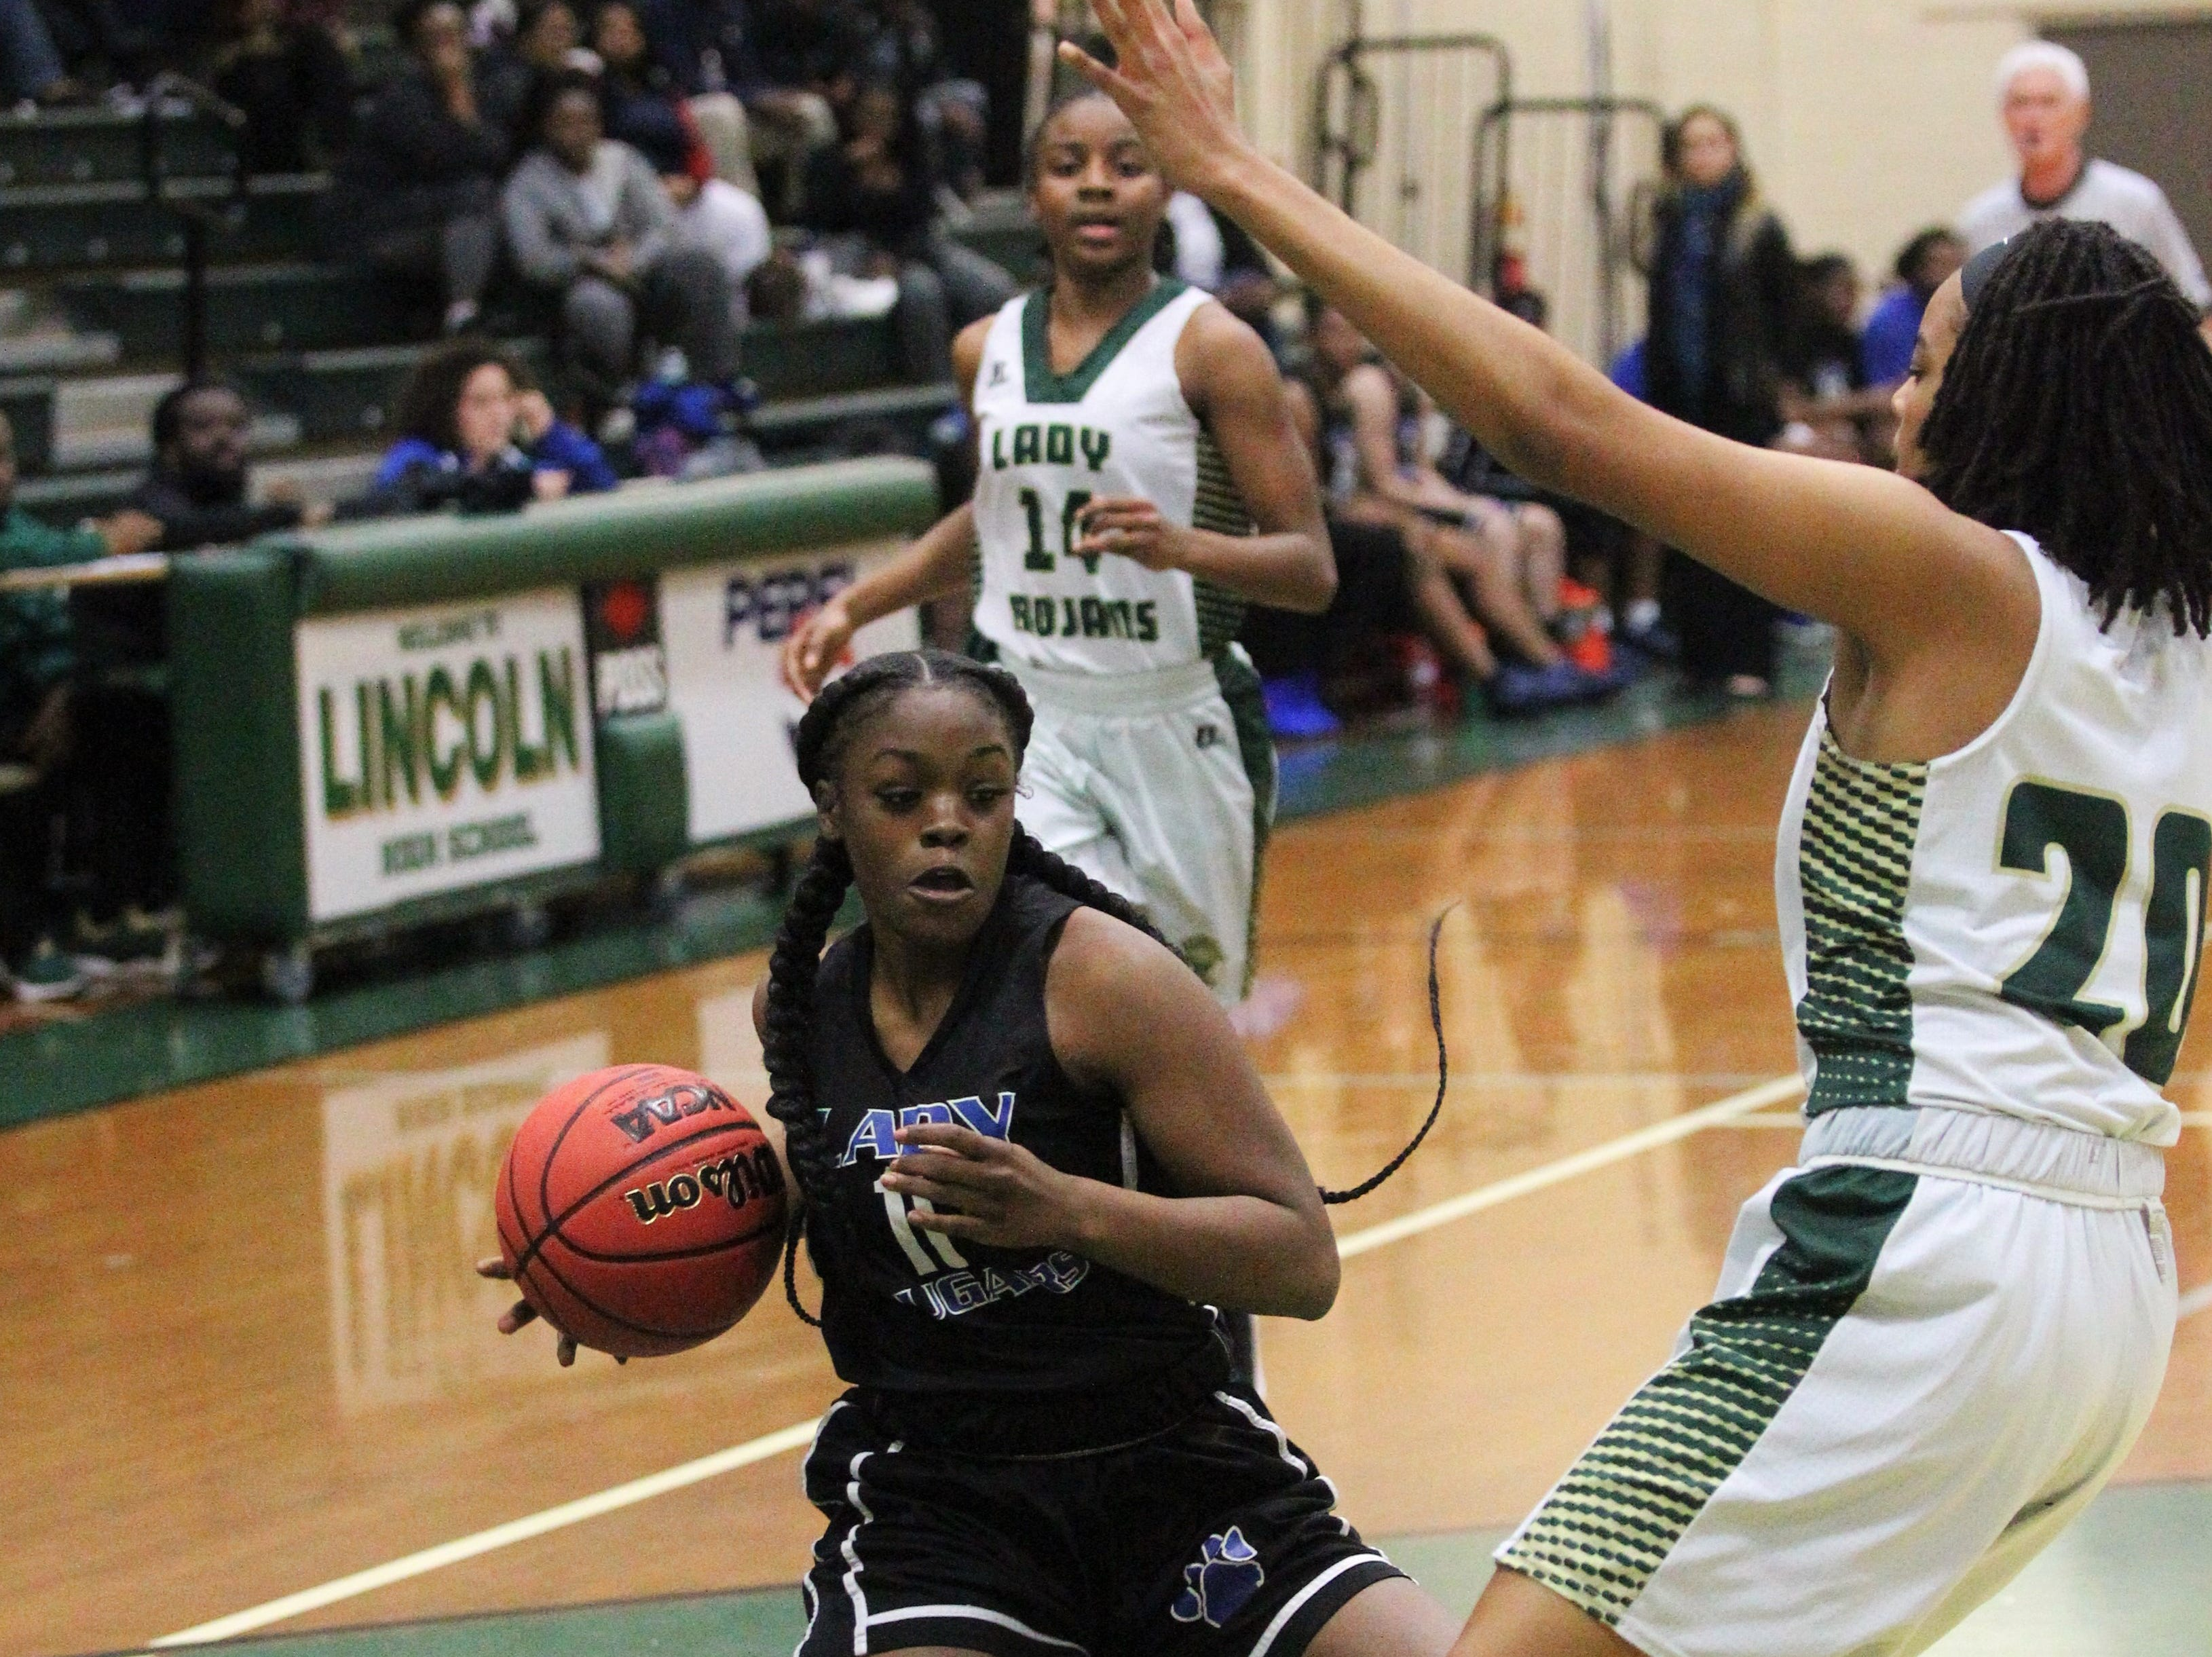 Godby's Akenke Chambers tries to get past Lincoln's Brooklyn Ware as Lincoln's girls basketball team beat Godby 67-32 on Jan. 29, 2019.